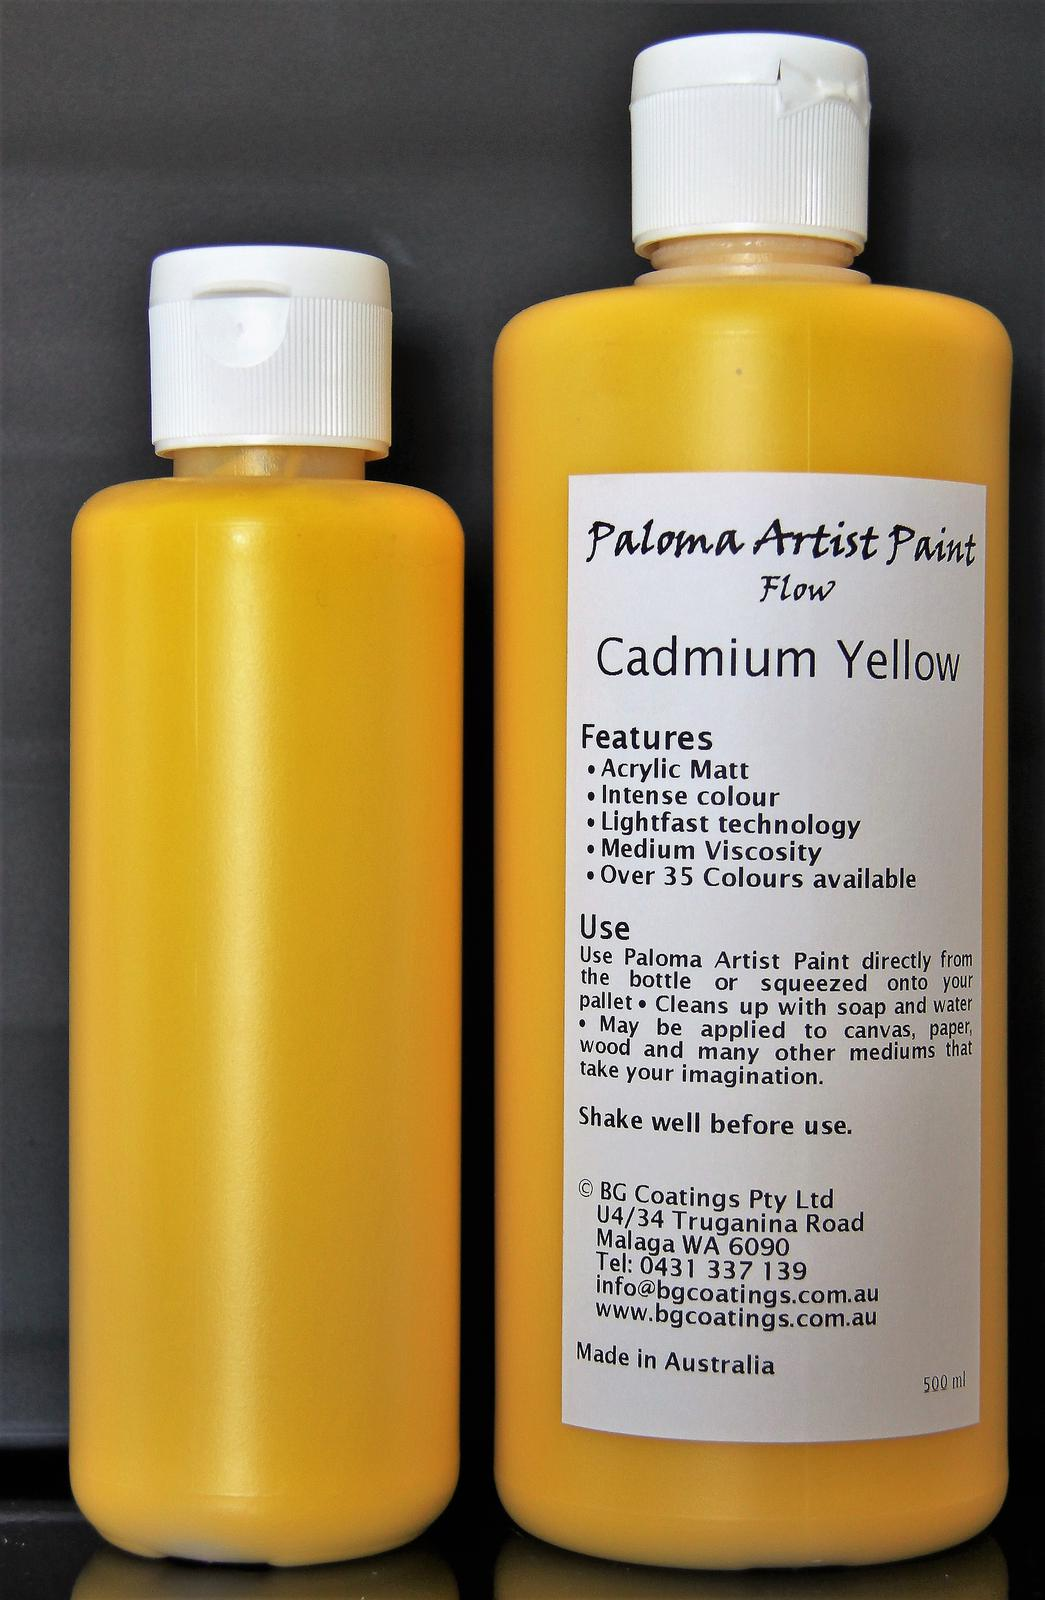 Paloma Artist Paint-Cadmium Yellow